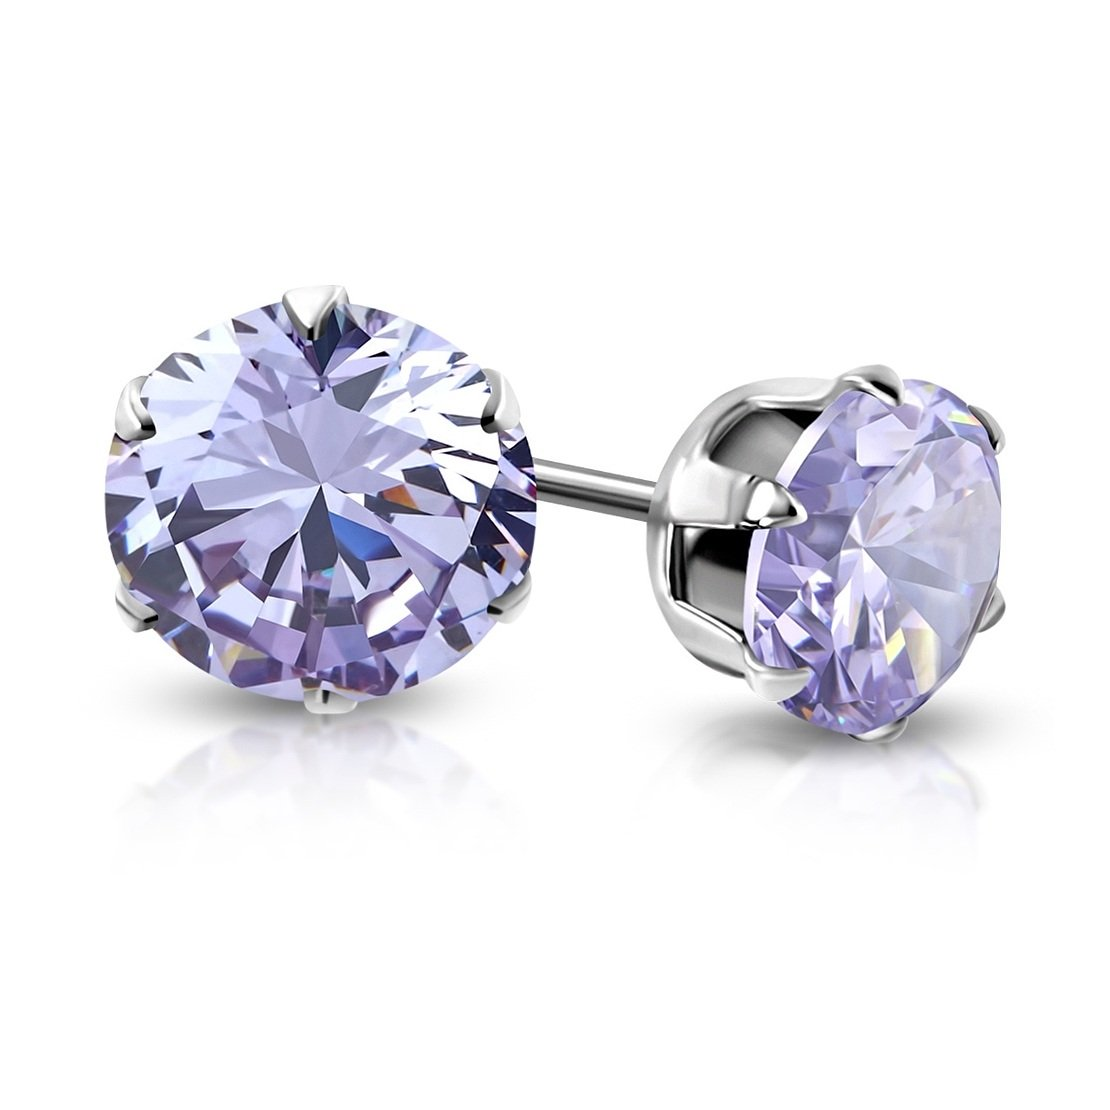 pair Stainless Steel Prong-Set Round Circle Stud Earrings with Light Purple// Violet CZ